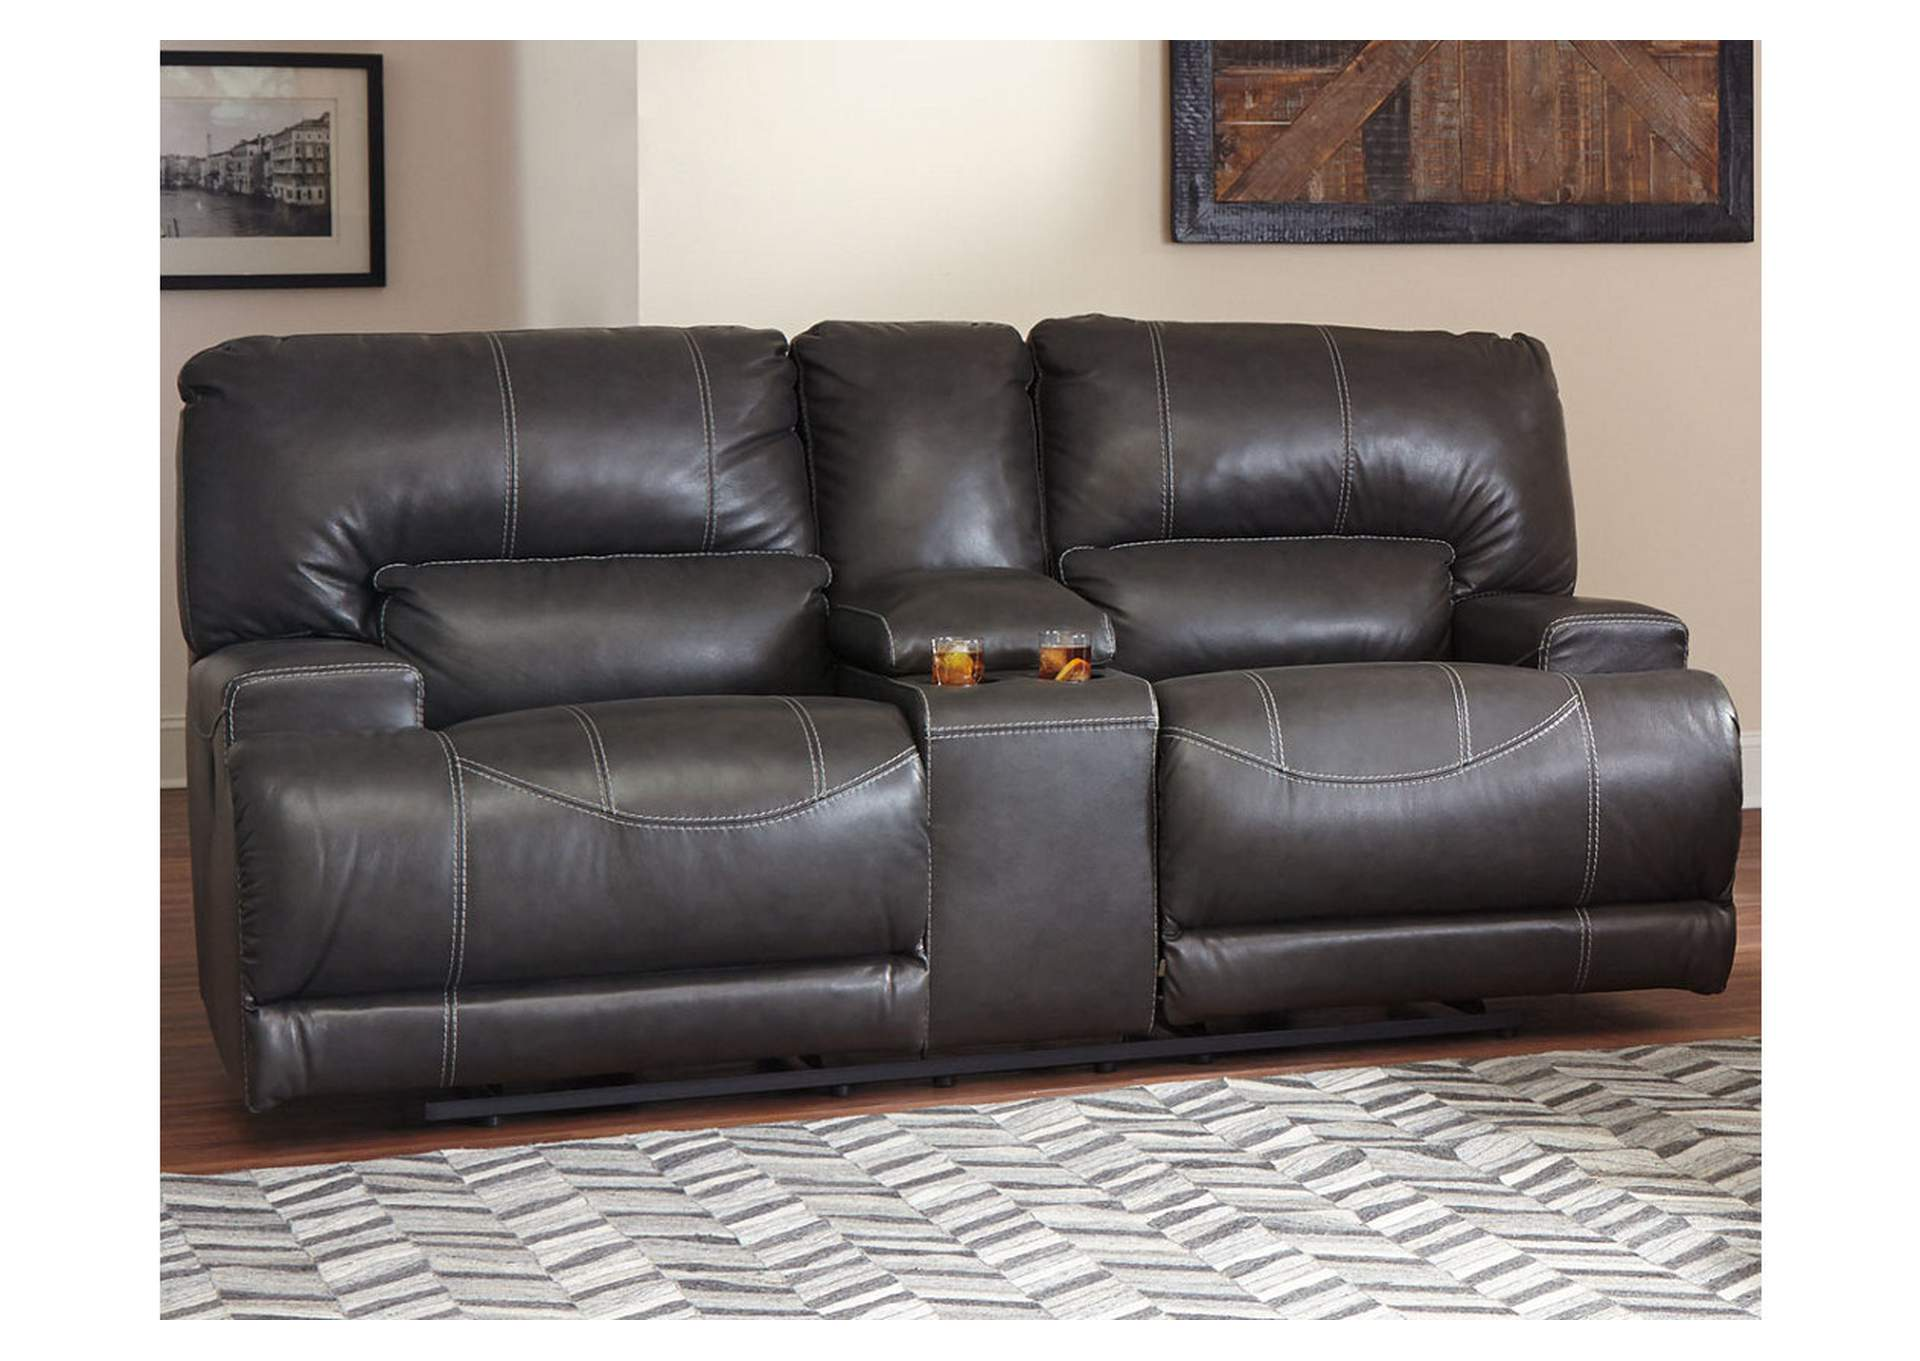 McCaskill Gray 2 Seat Reclining Power Sofa,Signature Design By Ashley